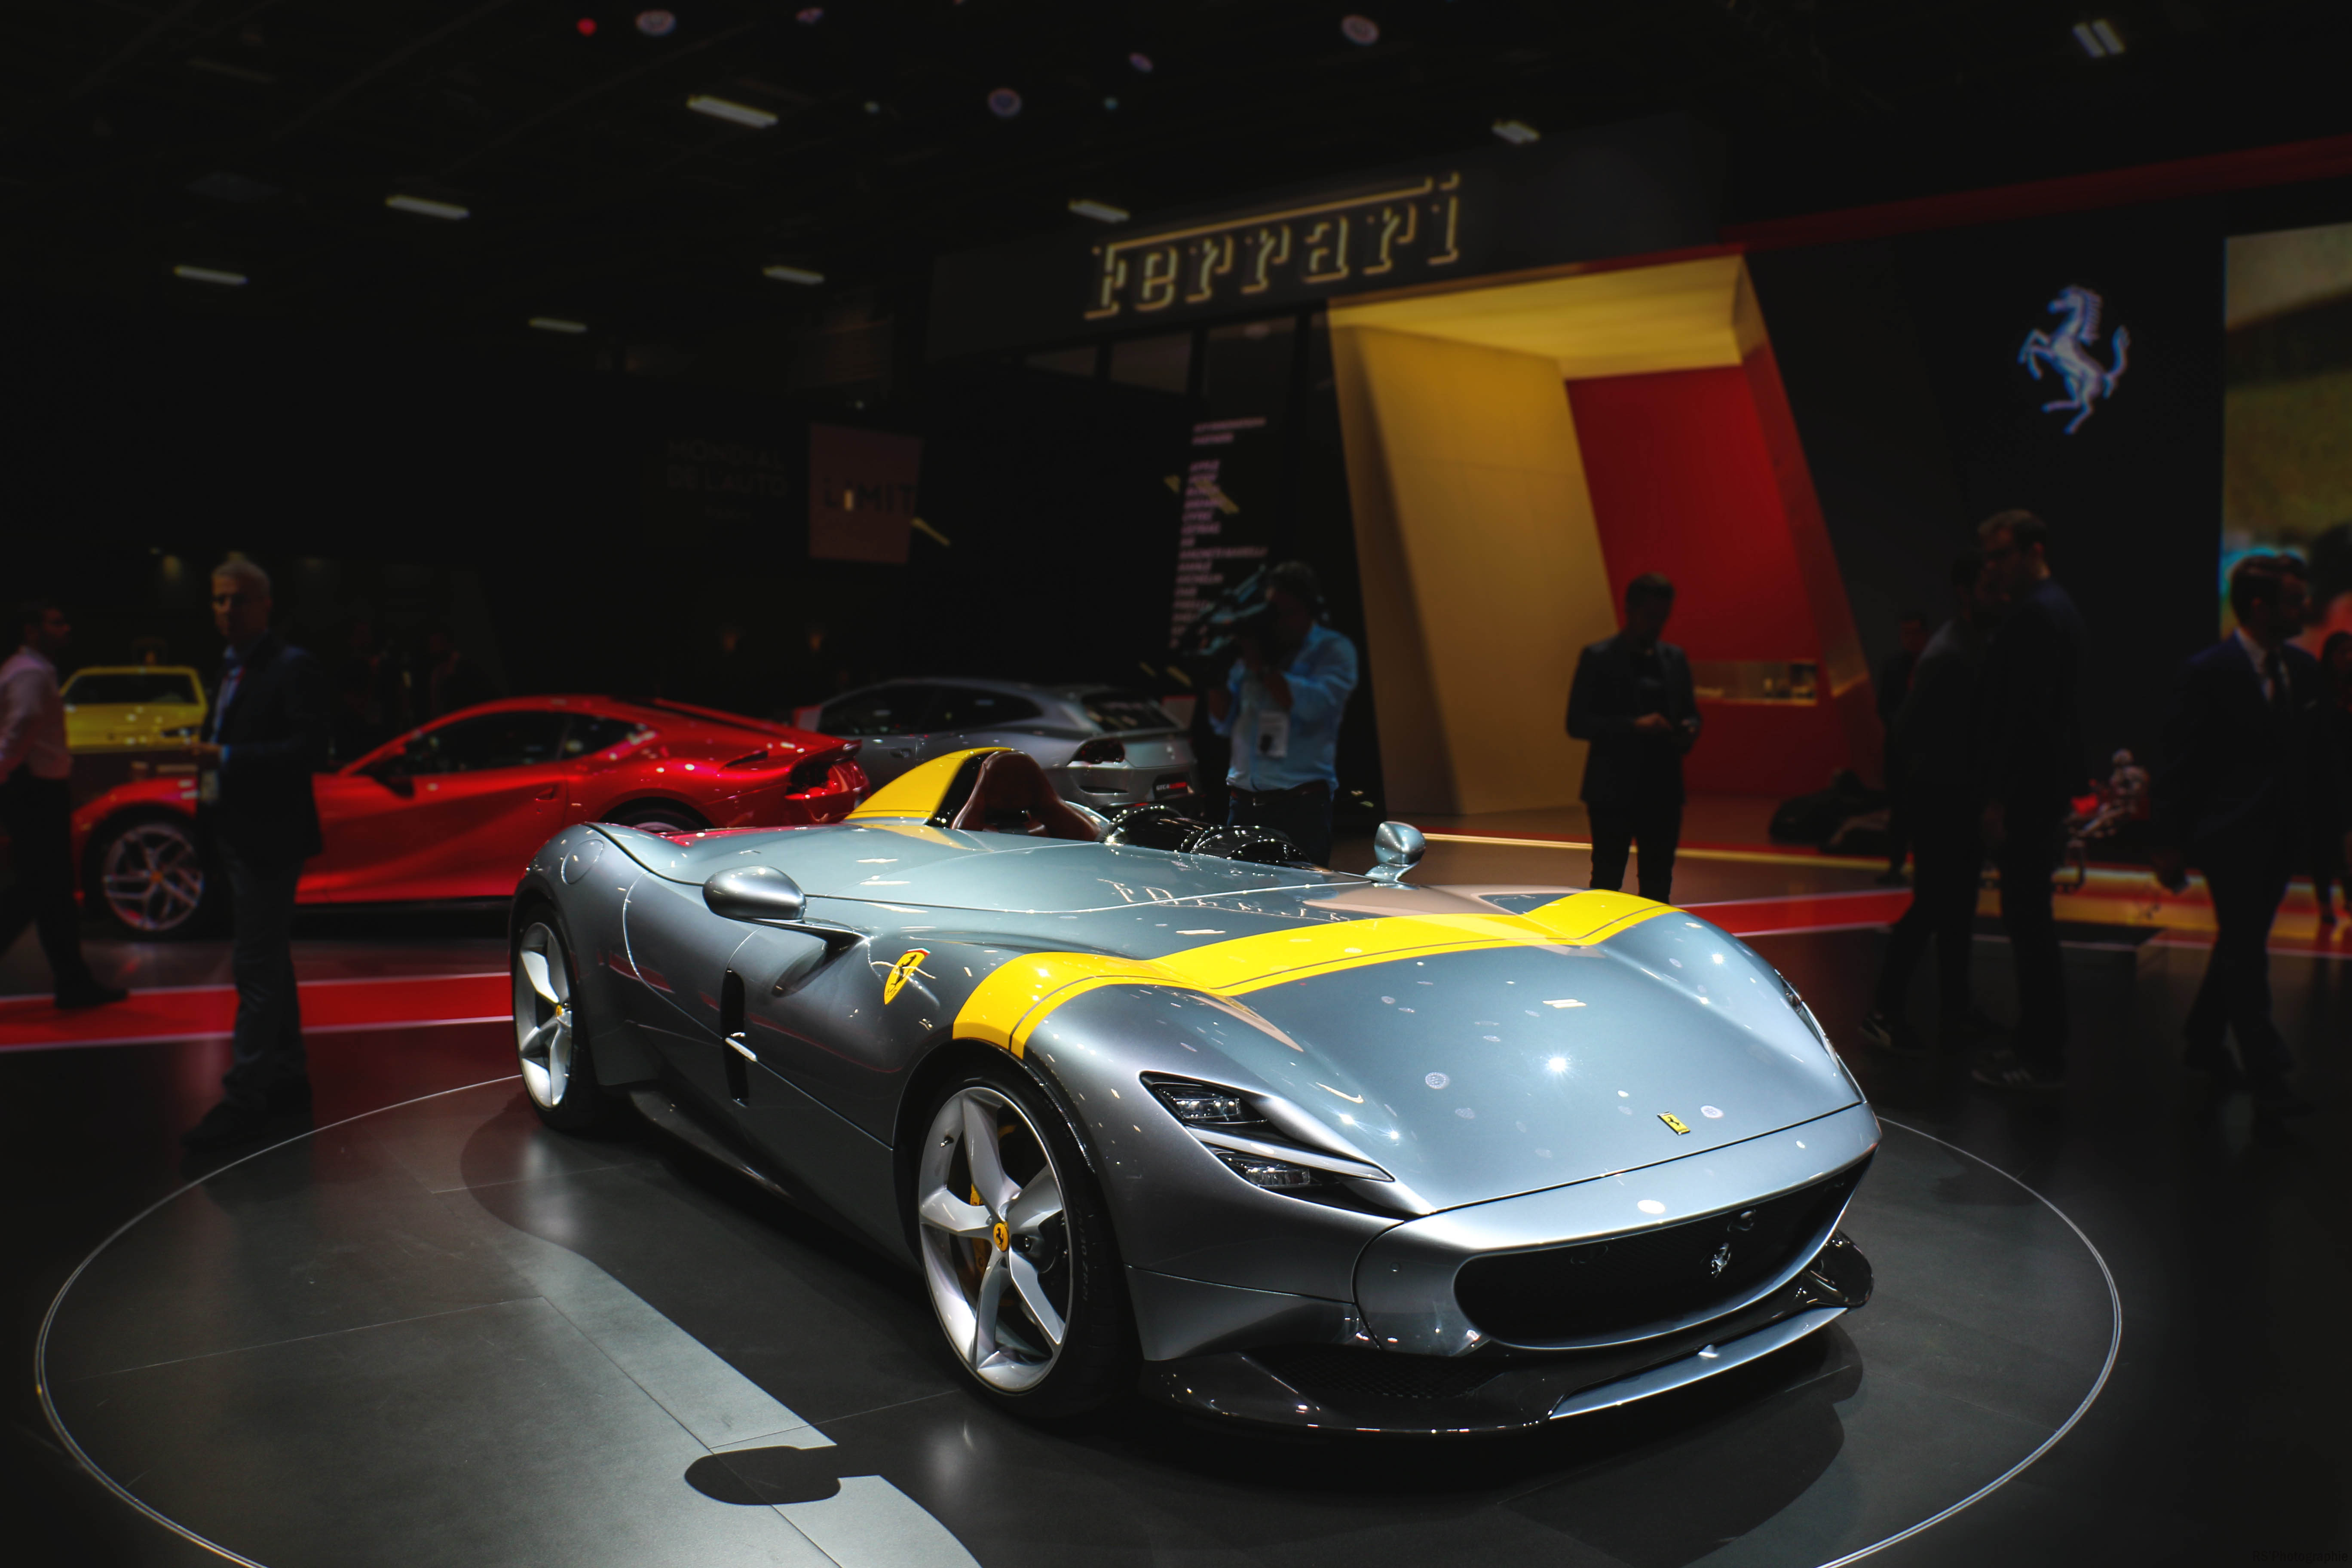 Ferrari Monza SP1 - front - Paris Motor Show - 2018 - Mondial Auto - photo by Arnaud Demasier RS Photographie